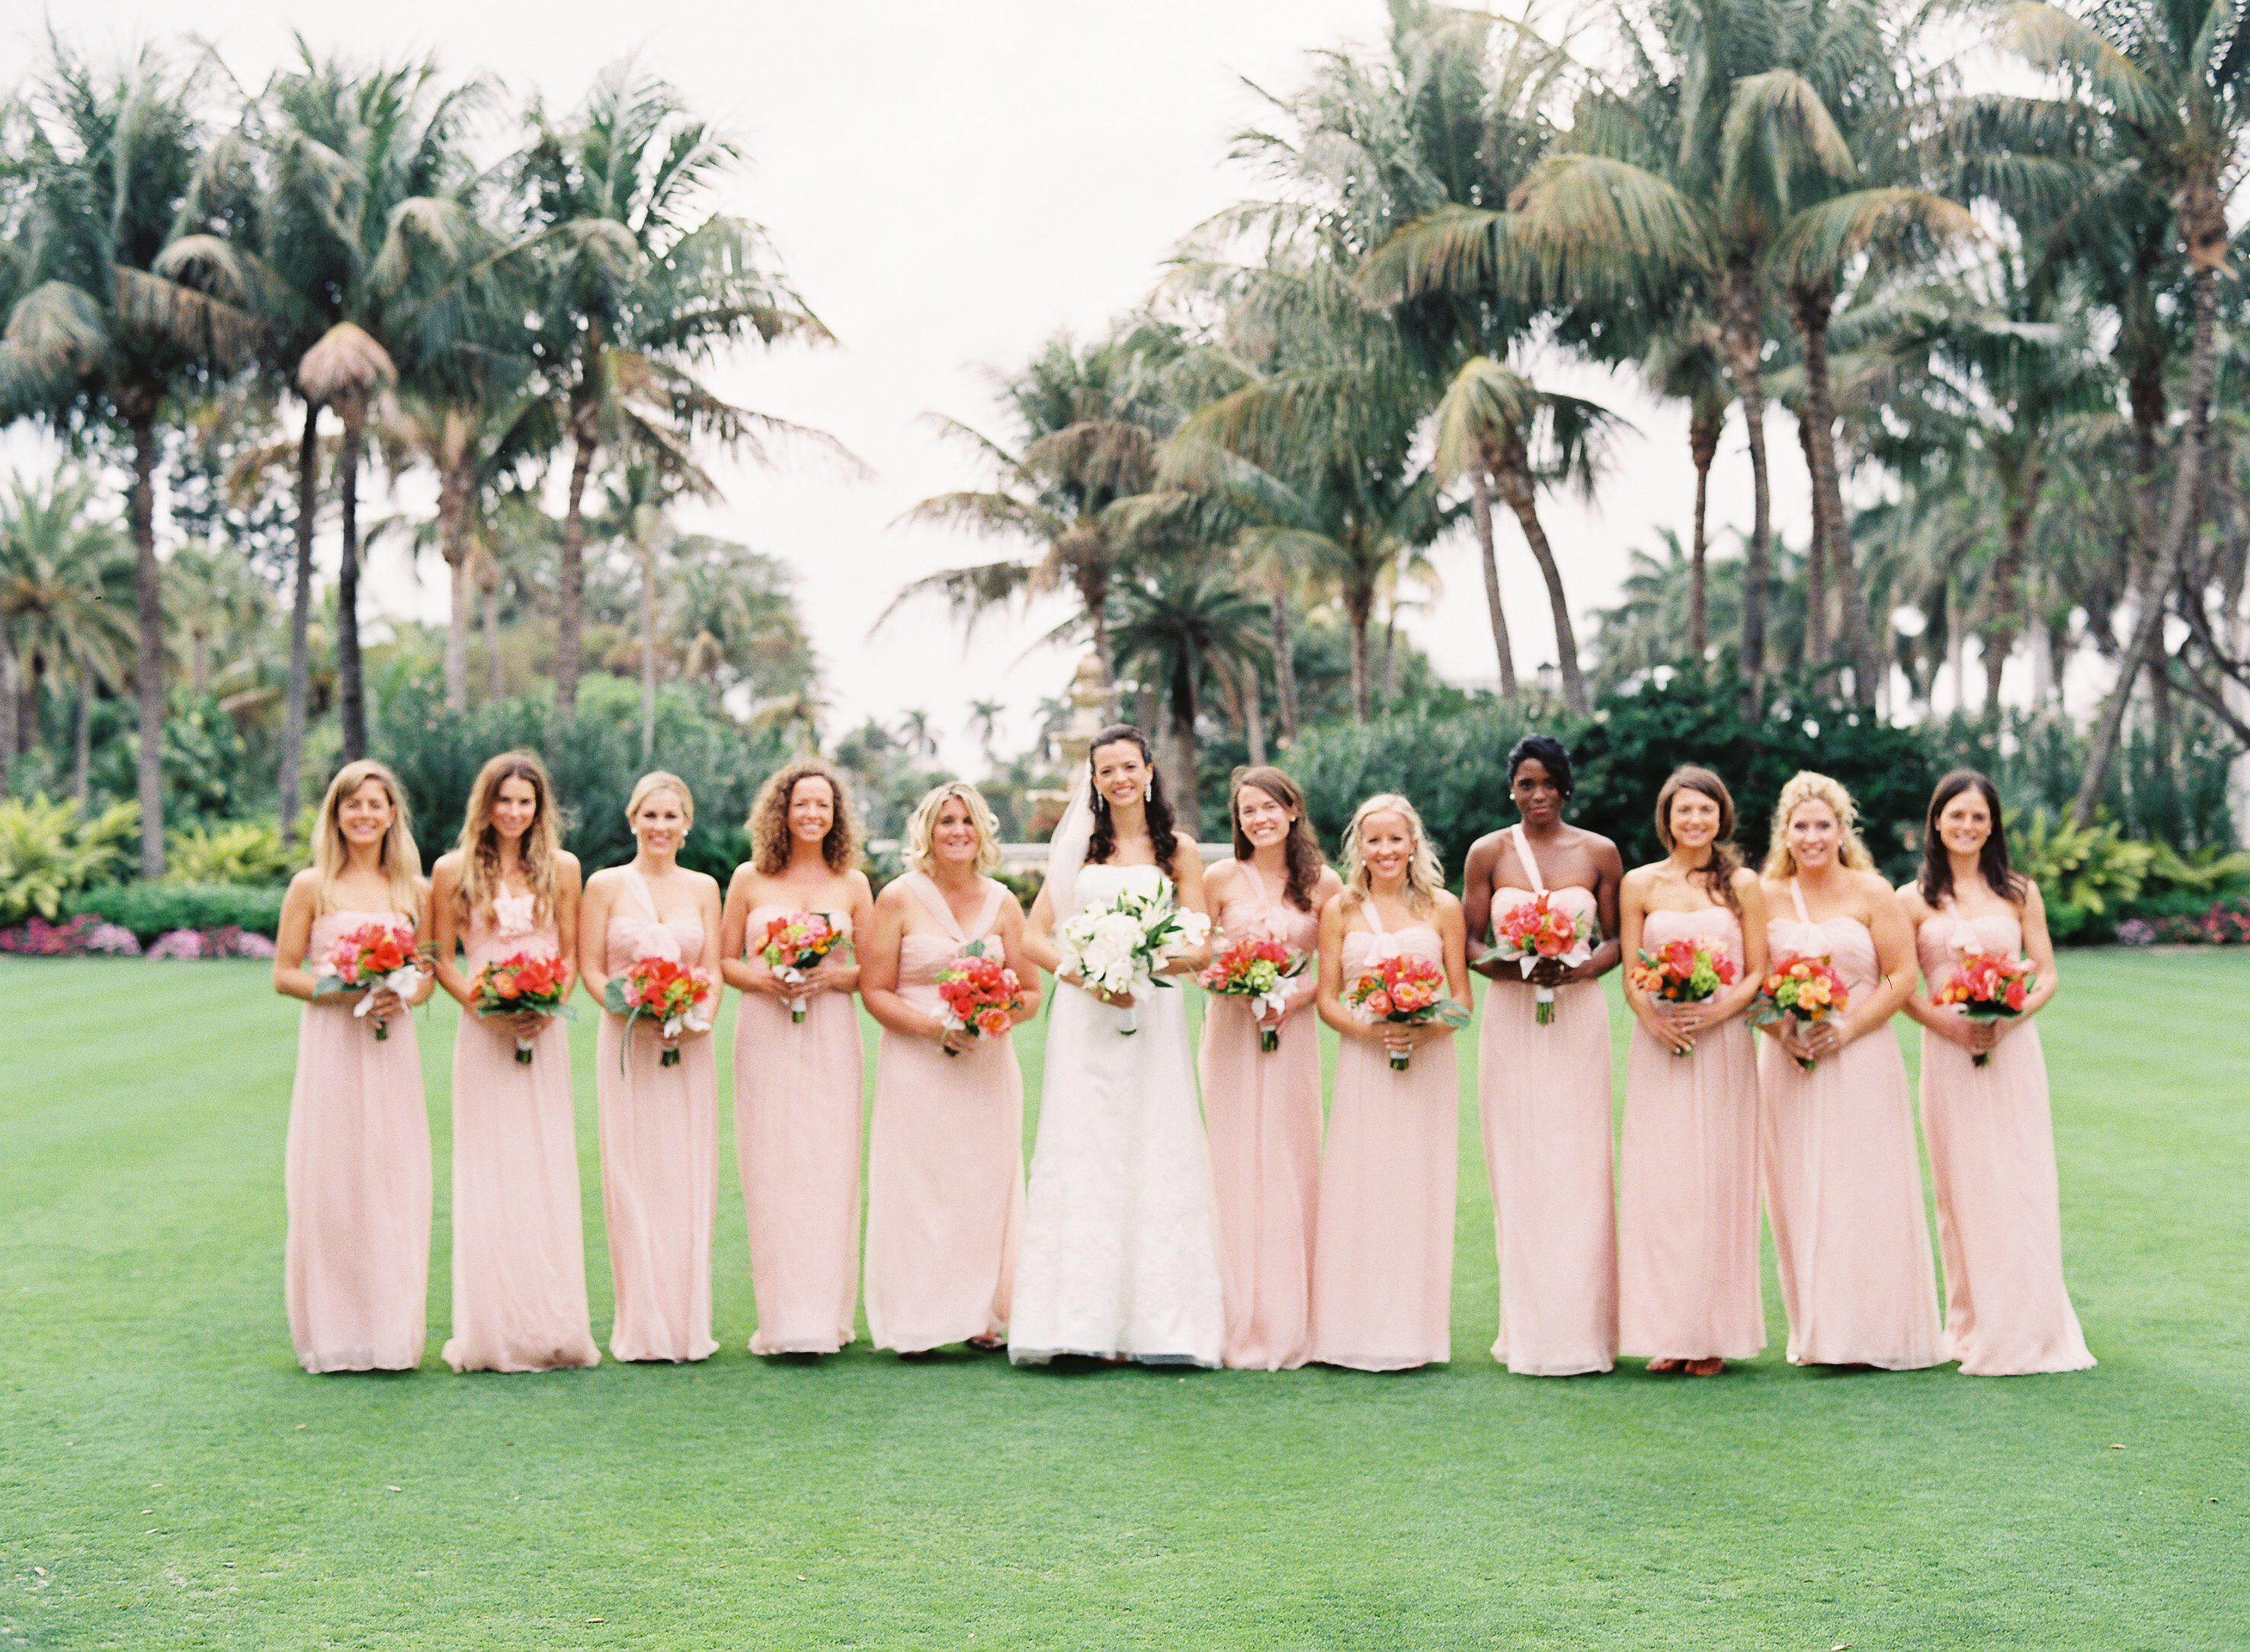 Bridesmaids, Real Weddings, pink, Classic, Bridal party, Elegant, Florida